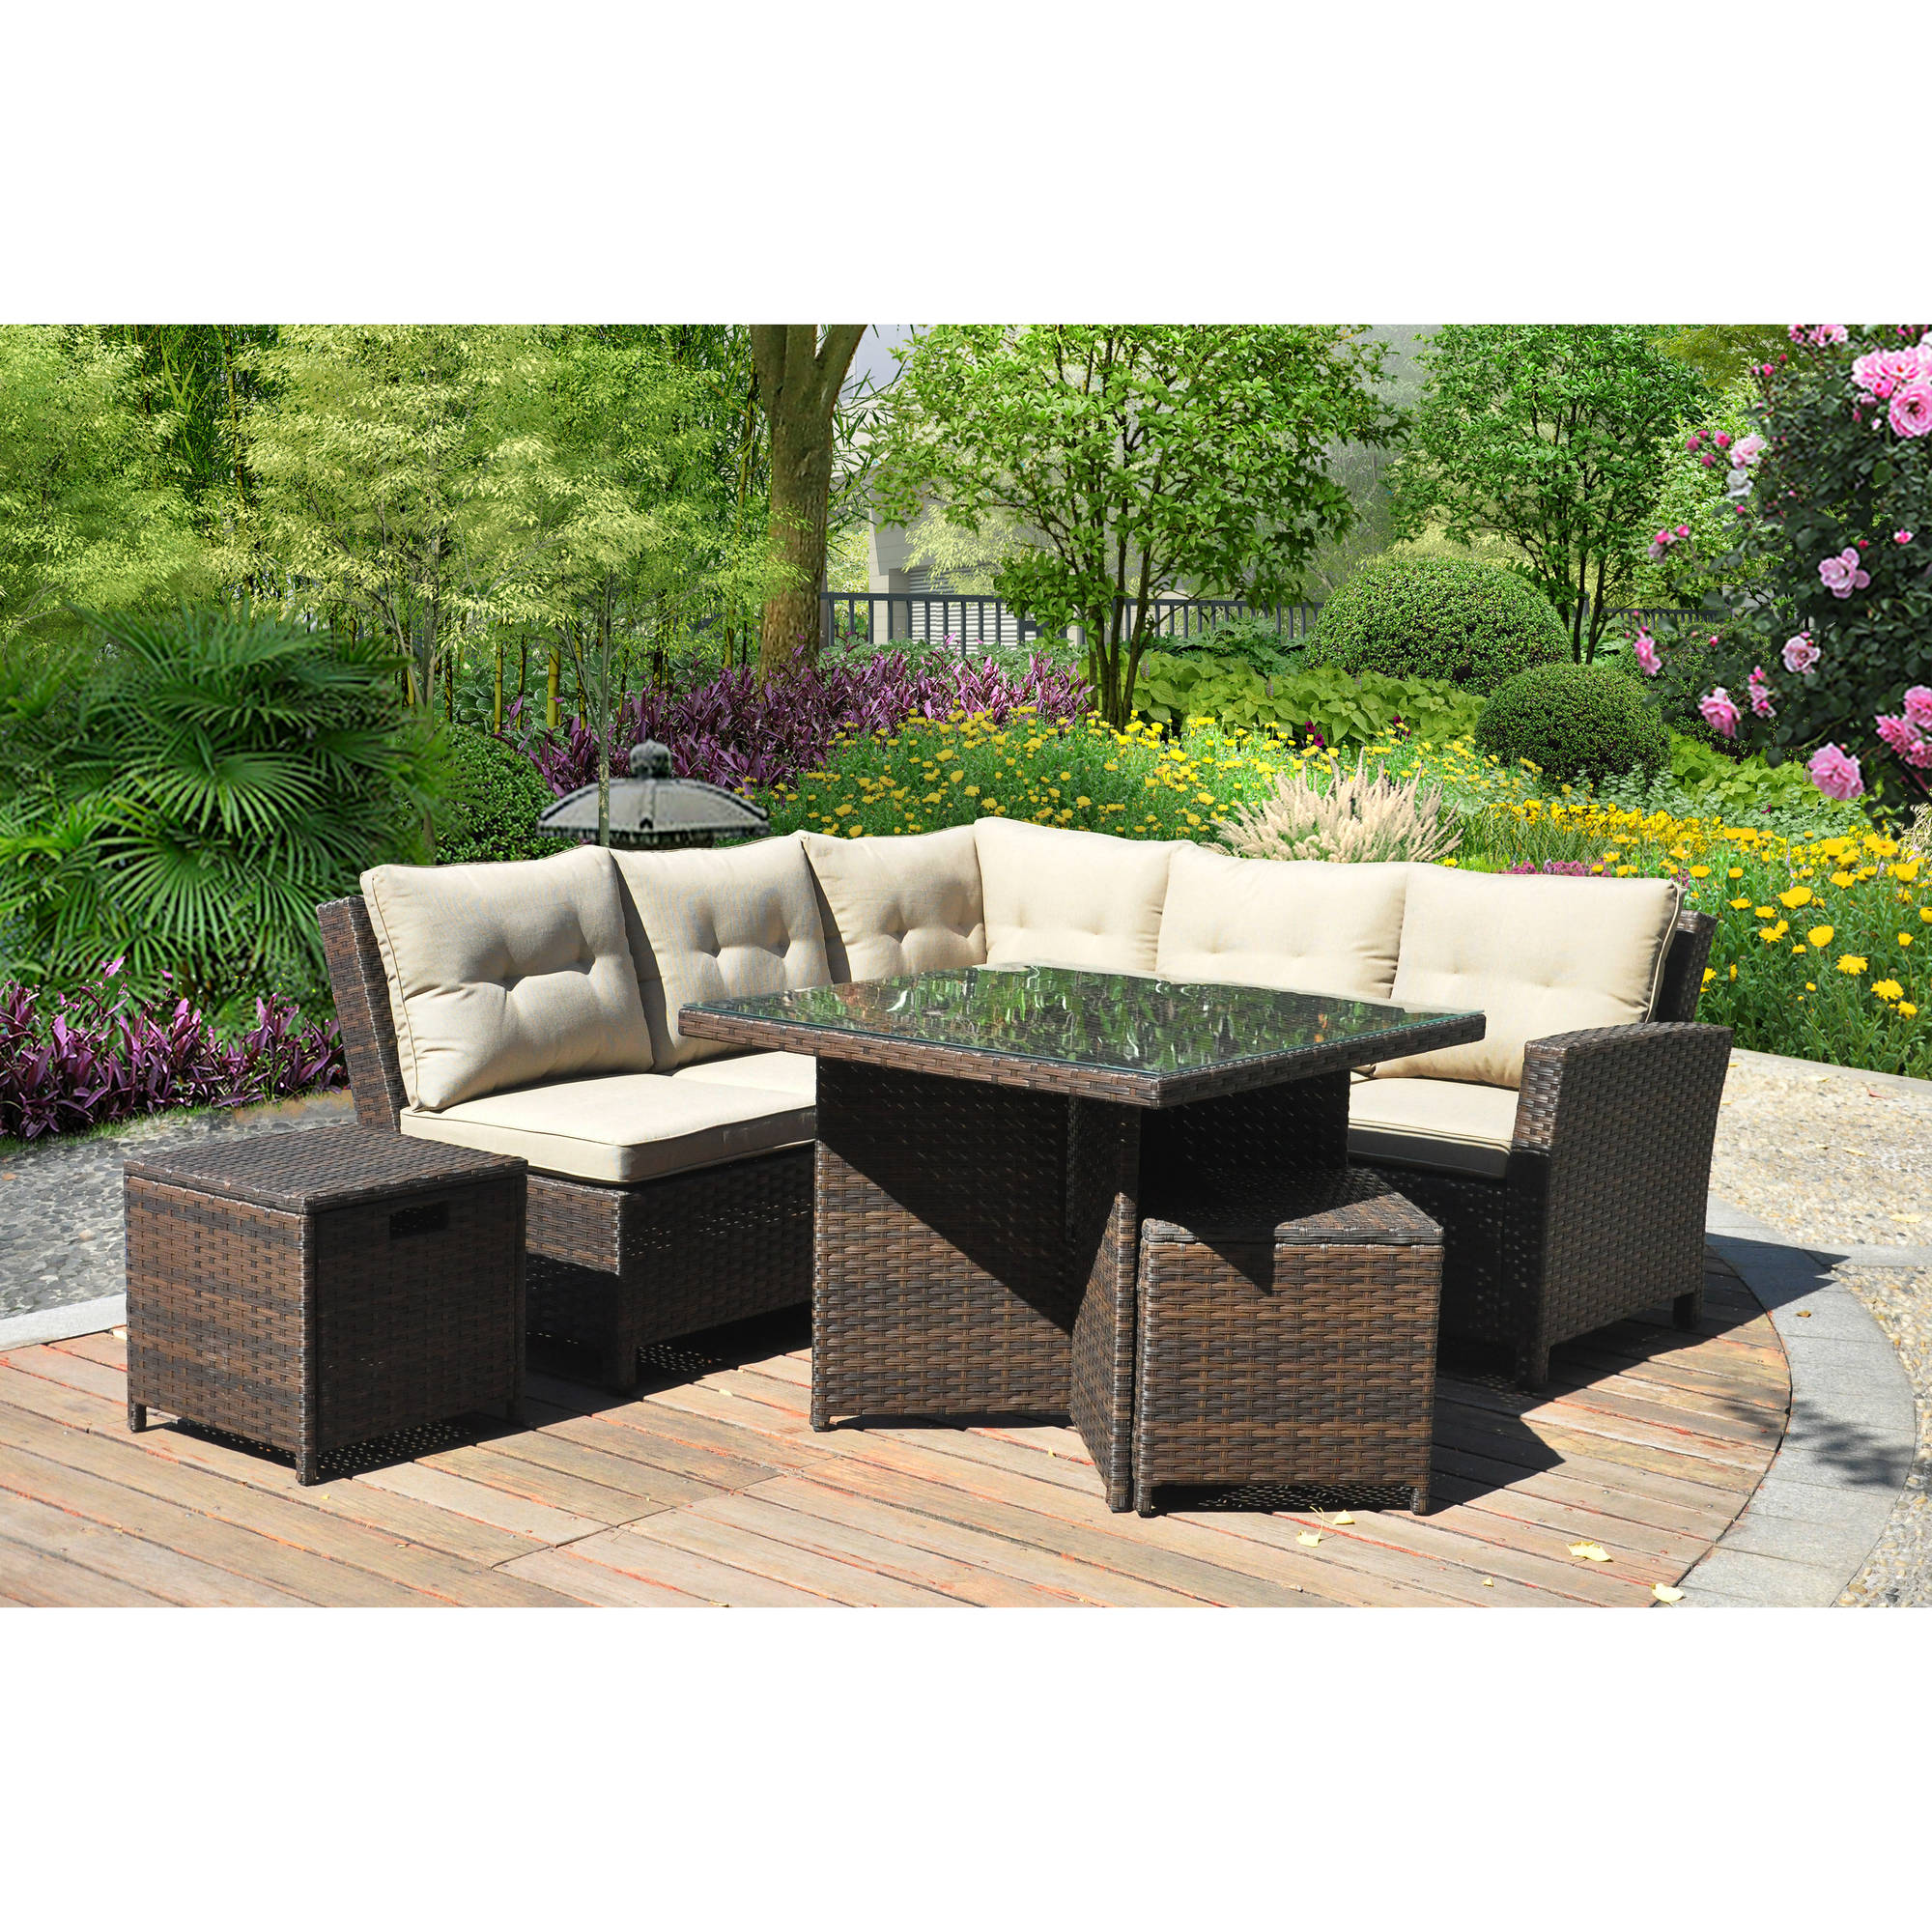 Better Homes And Gardens Baytown 5 Piece Woven Sectional Sofa Set, Seats 5    Walmart.com